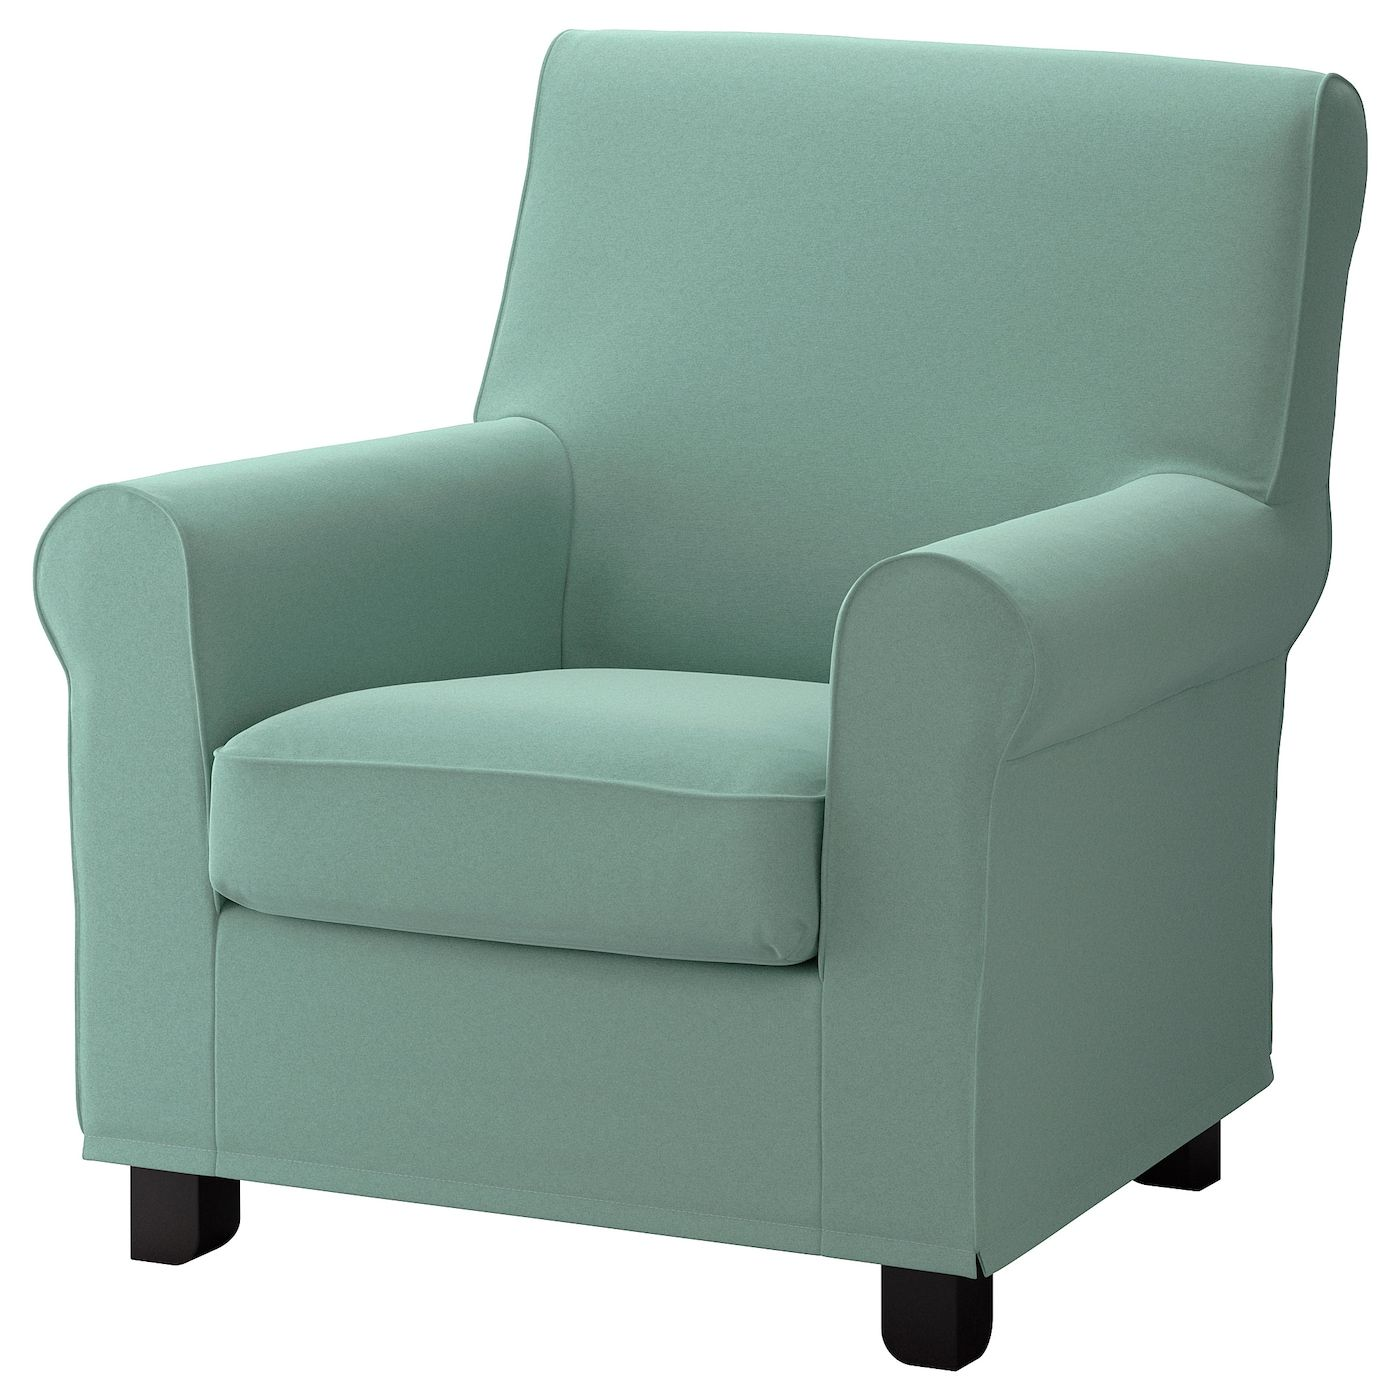 IKEA GRÖNLID Armchair Ljungen light green Armchair